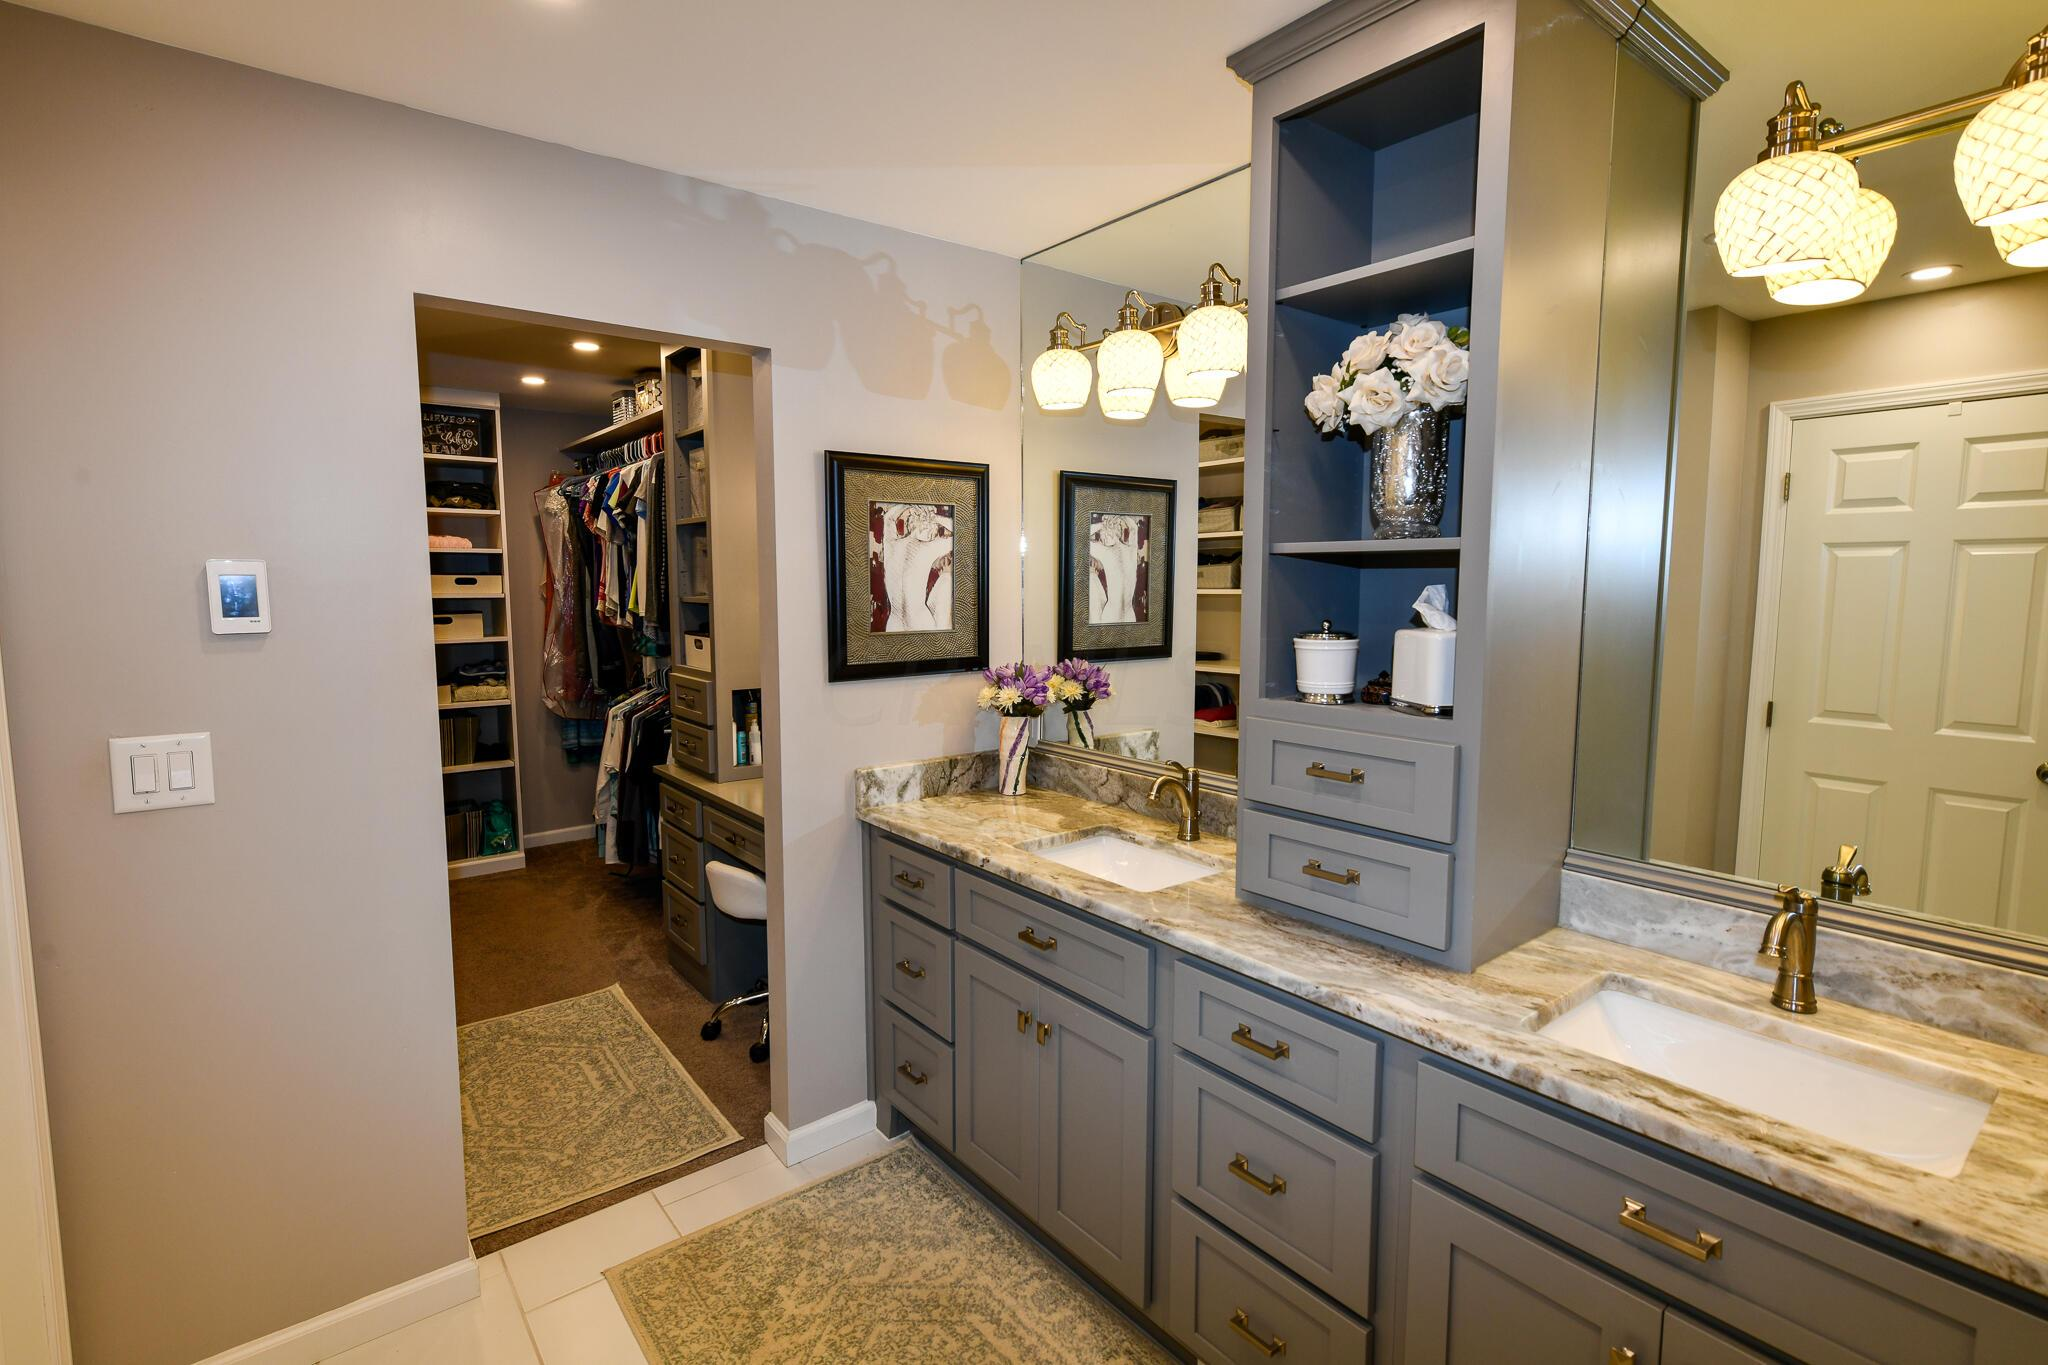 Custom Mirrors and Center Tower